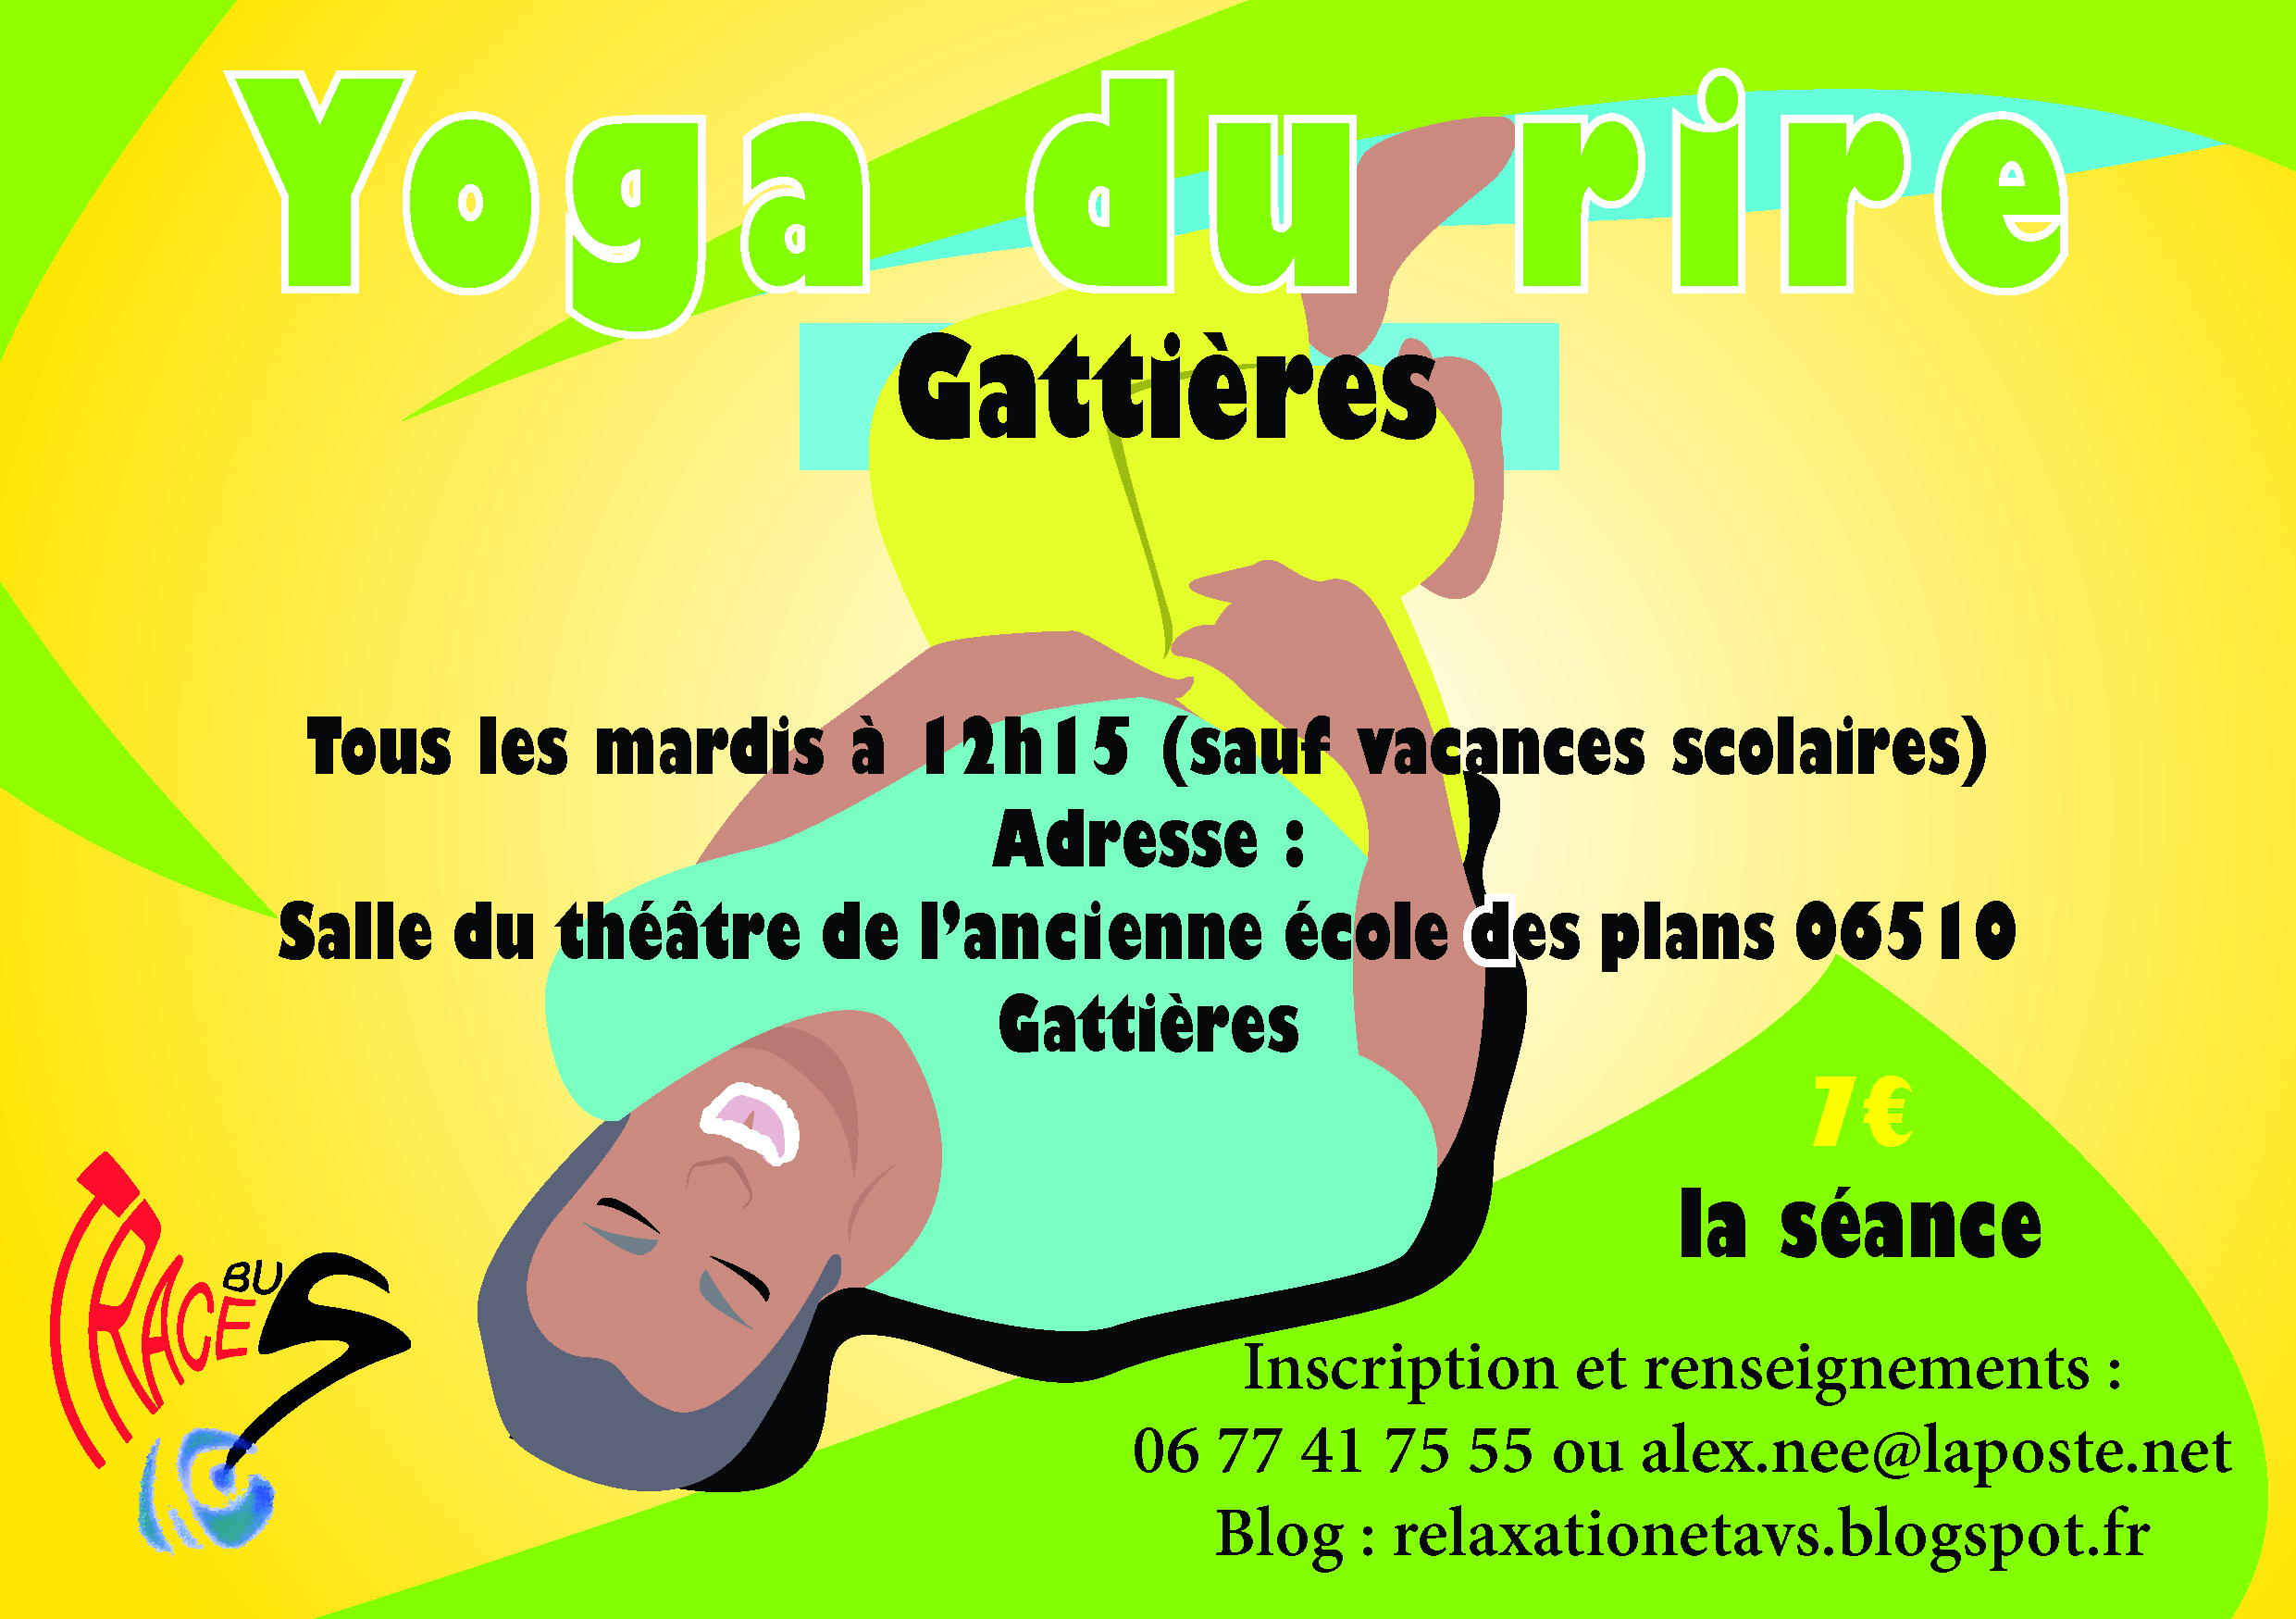 Traces Yoga Du Rire Site De Gattieres